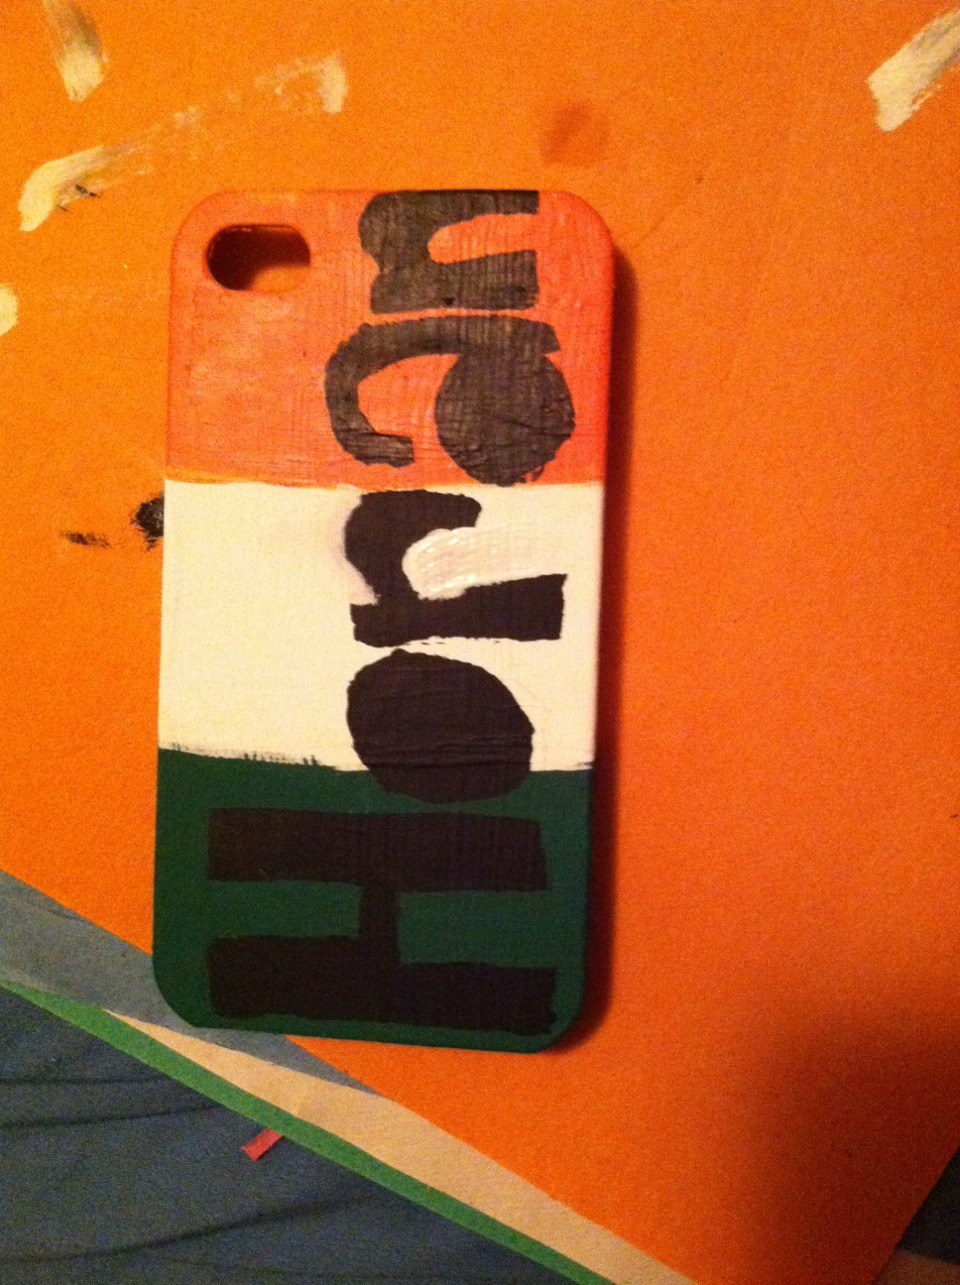 After you paint the letters on, it should look something like this. You may need to clean up the edges.